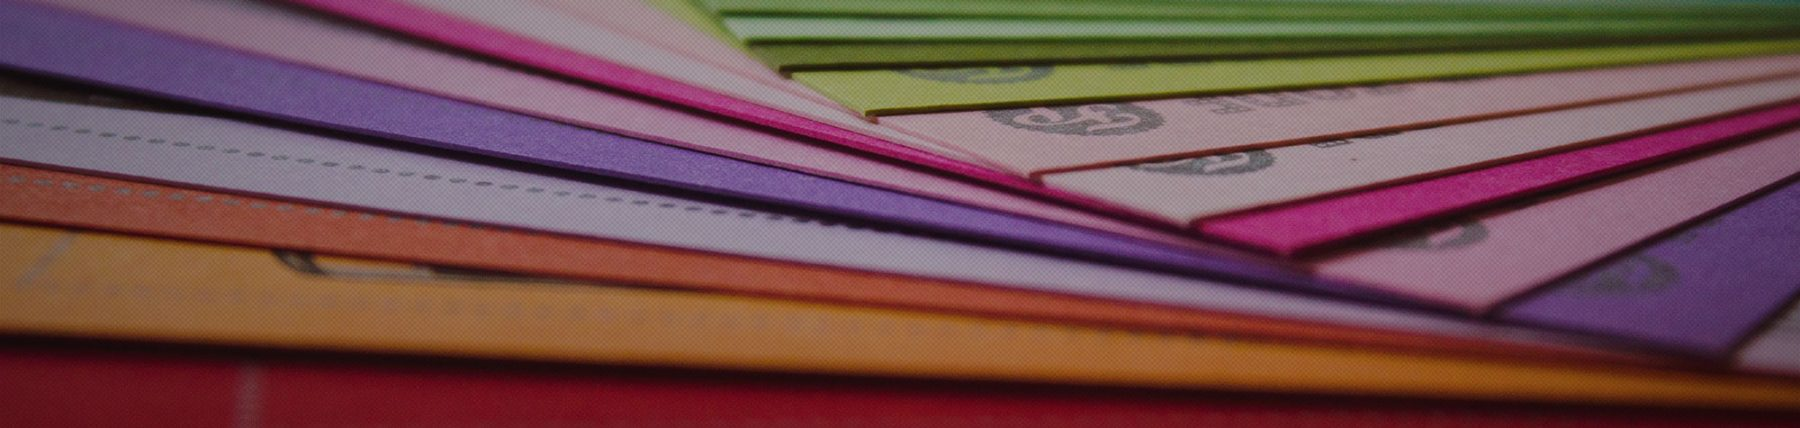 Paper Quality: What Can it Say About Your Business?